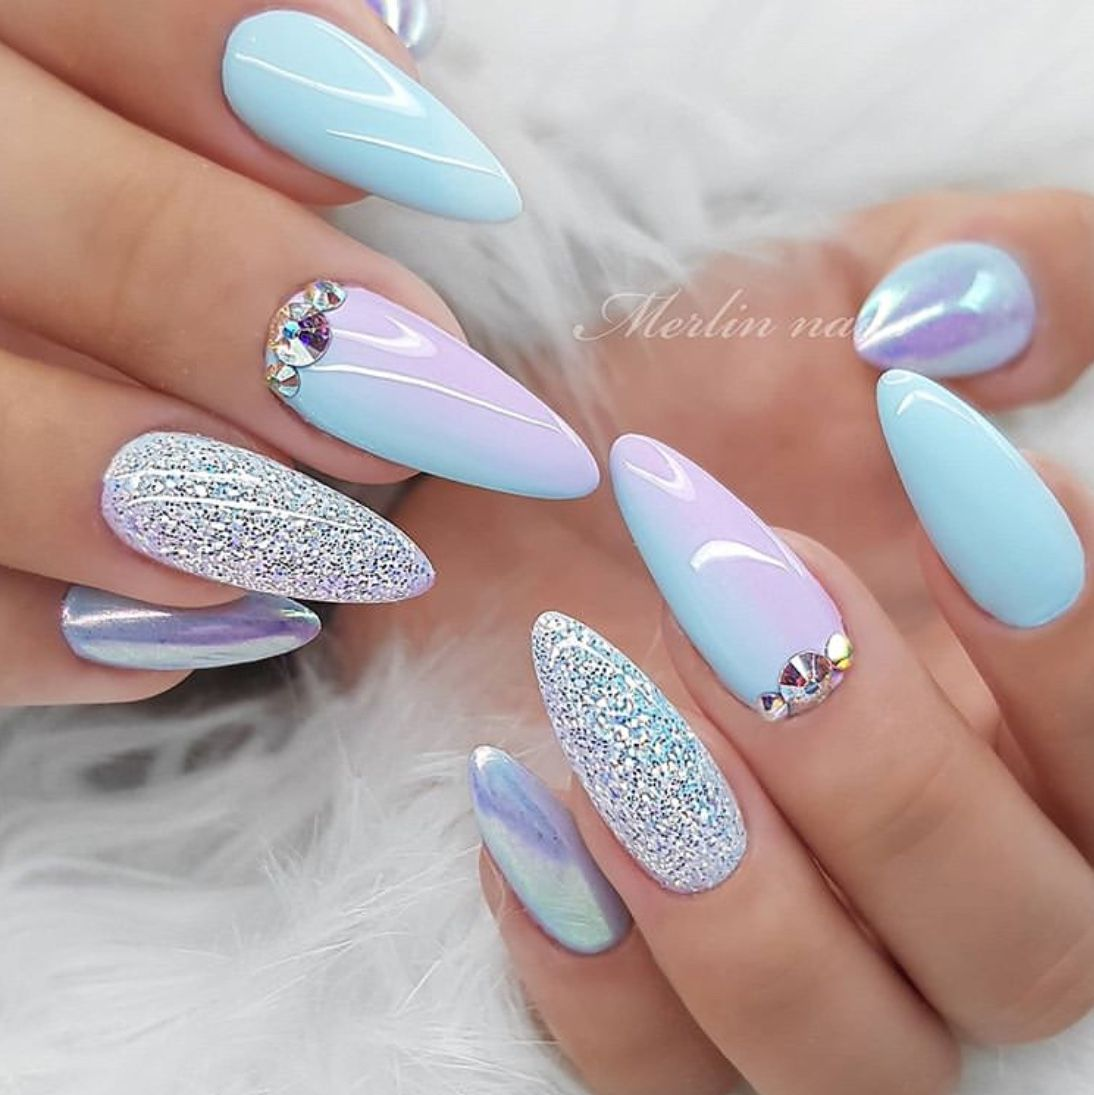 Over 50 Superb Wedding Nail Design Ideas – The Glossychic